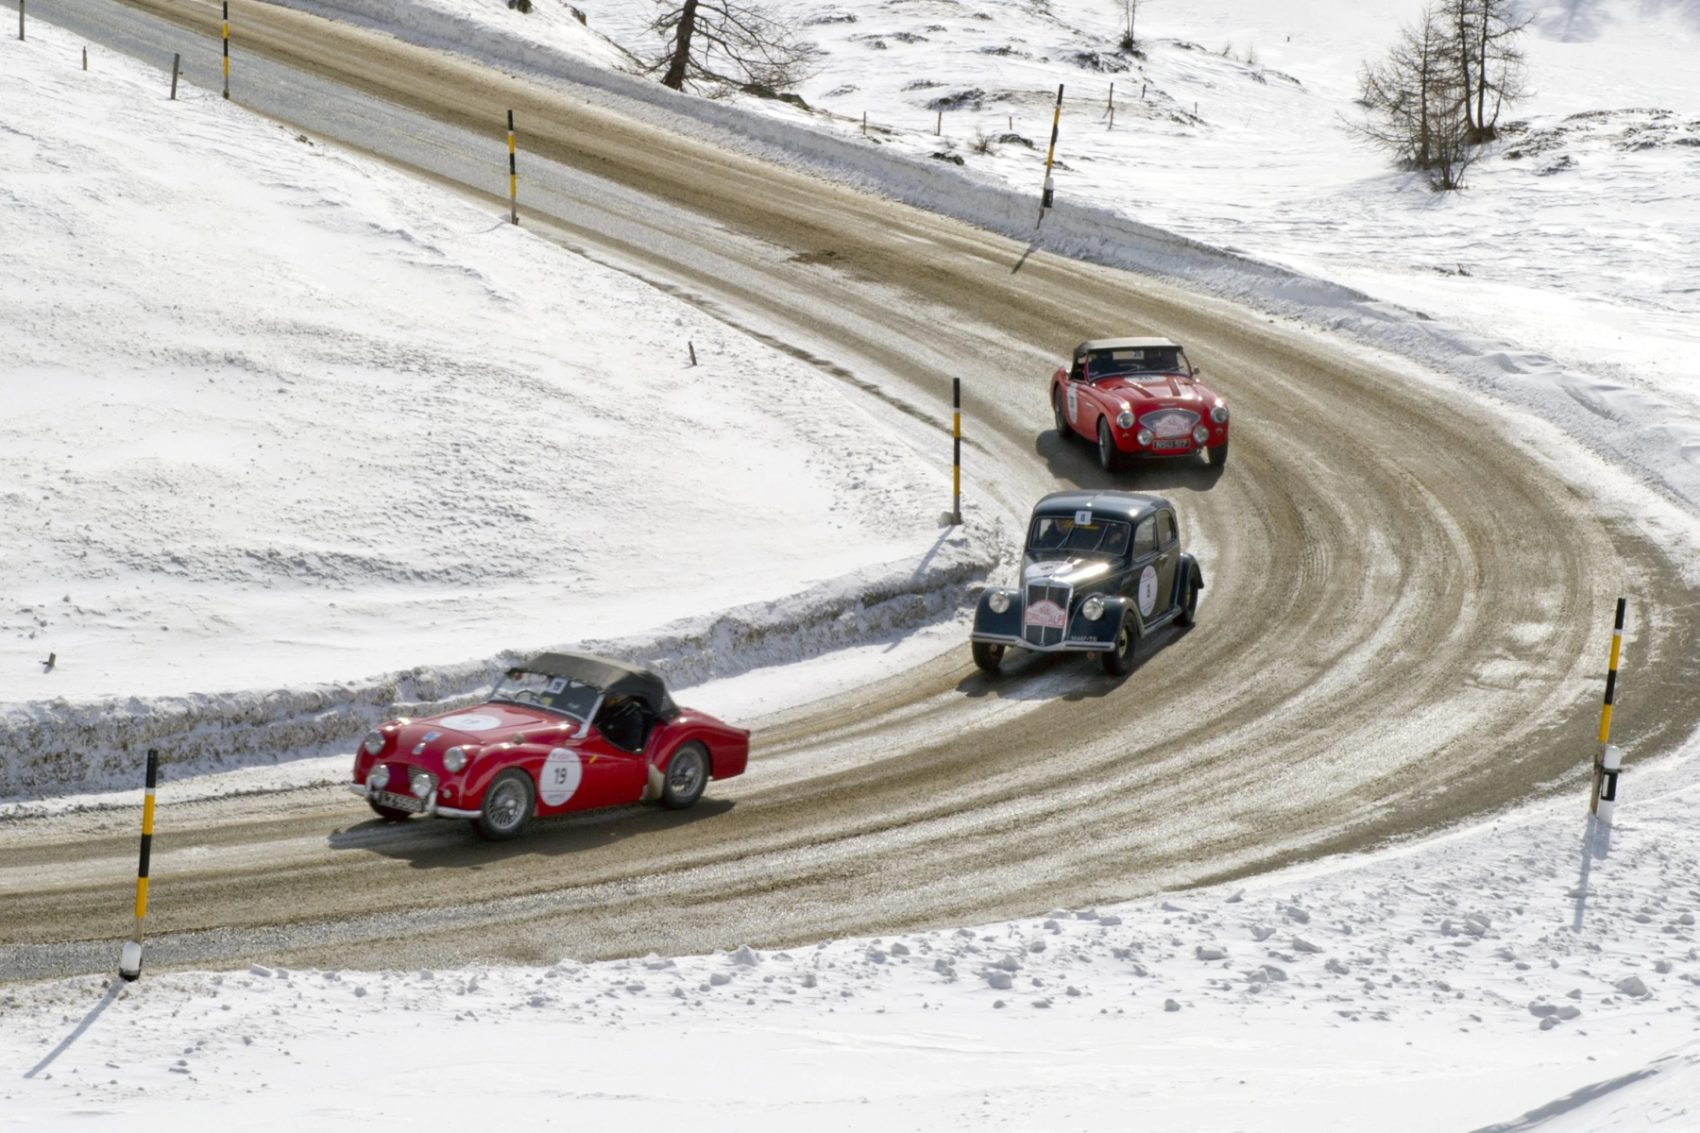 The Mille Miglia is coming to the Alps- Coppa delle Alpi. Photo: Coppa delle Alpi.